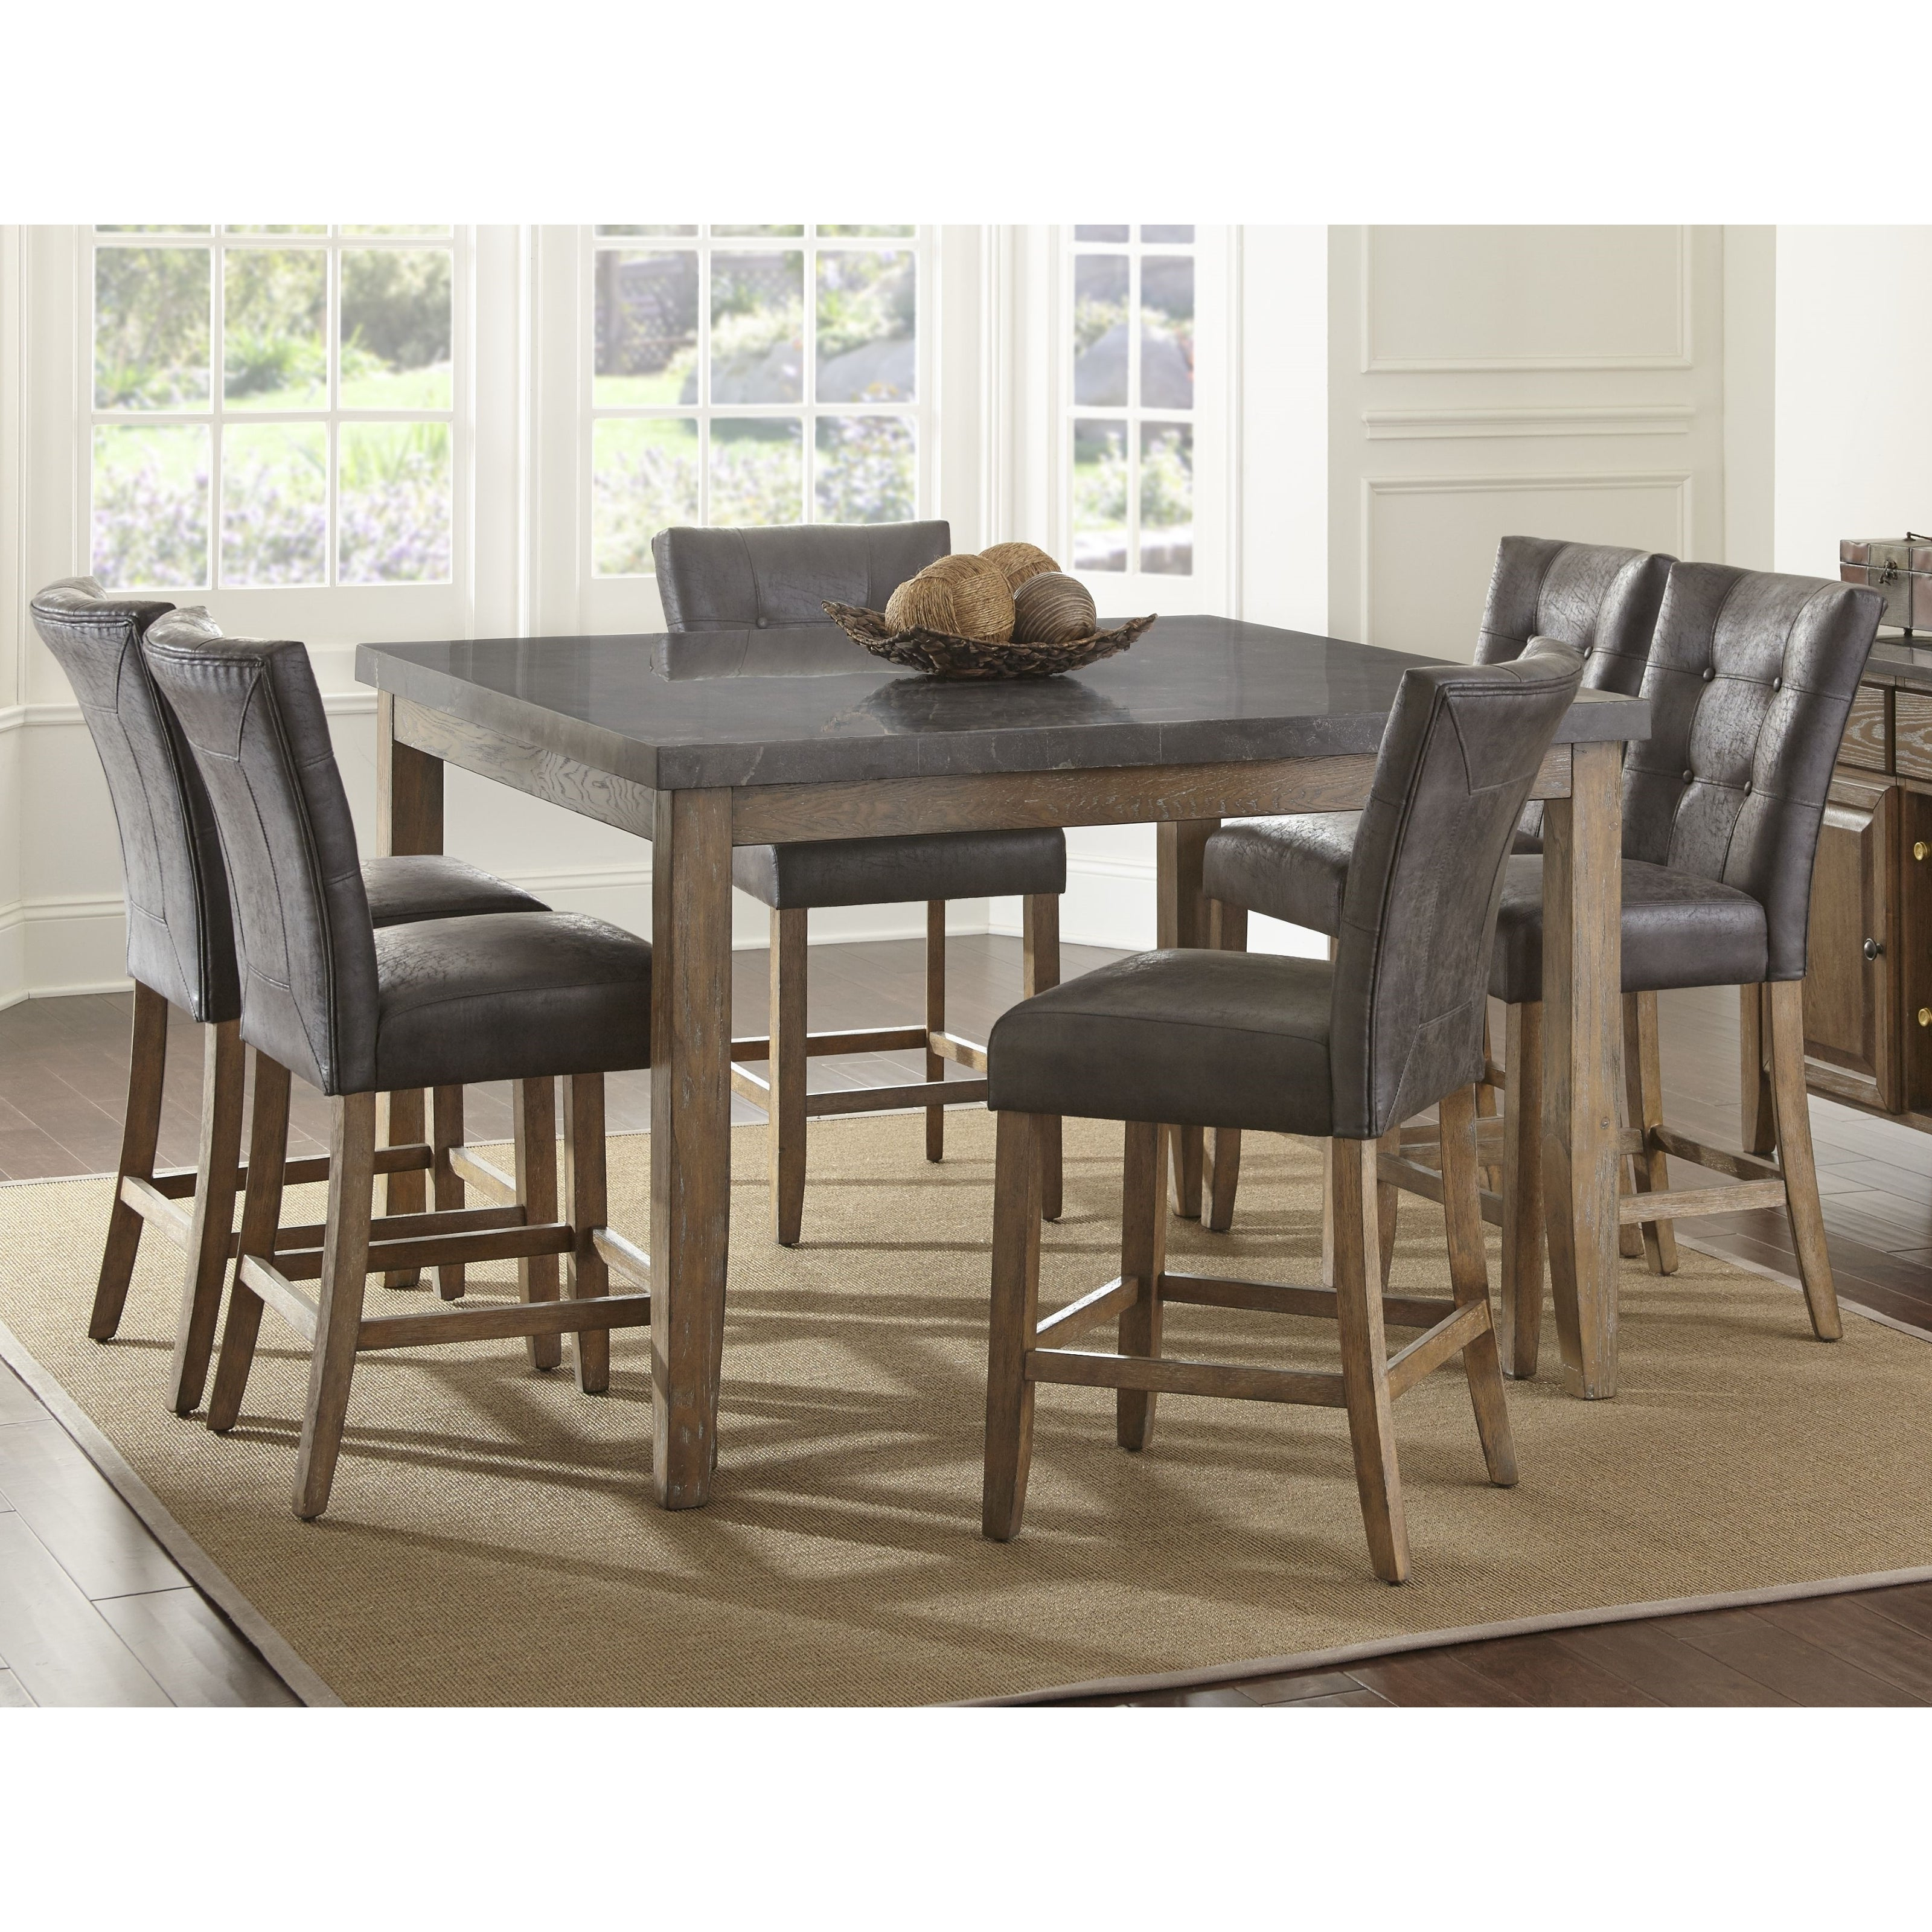 Buy 7 Piece Sets Kitchen & Dining Room Sets Online At Overstock Pertaining To Fashionable Autberry 5 Piece Dining Sets (View 22 of 25)